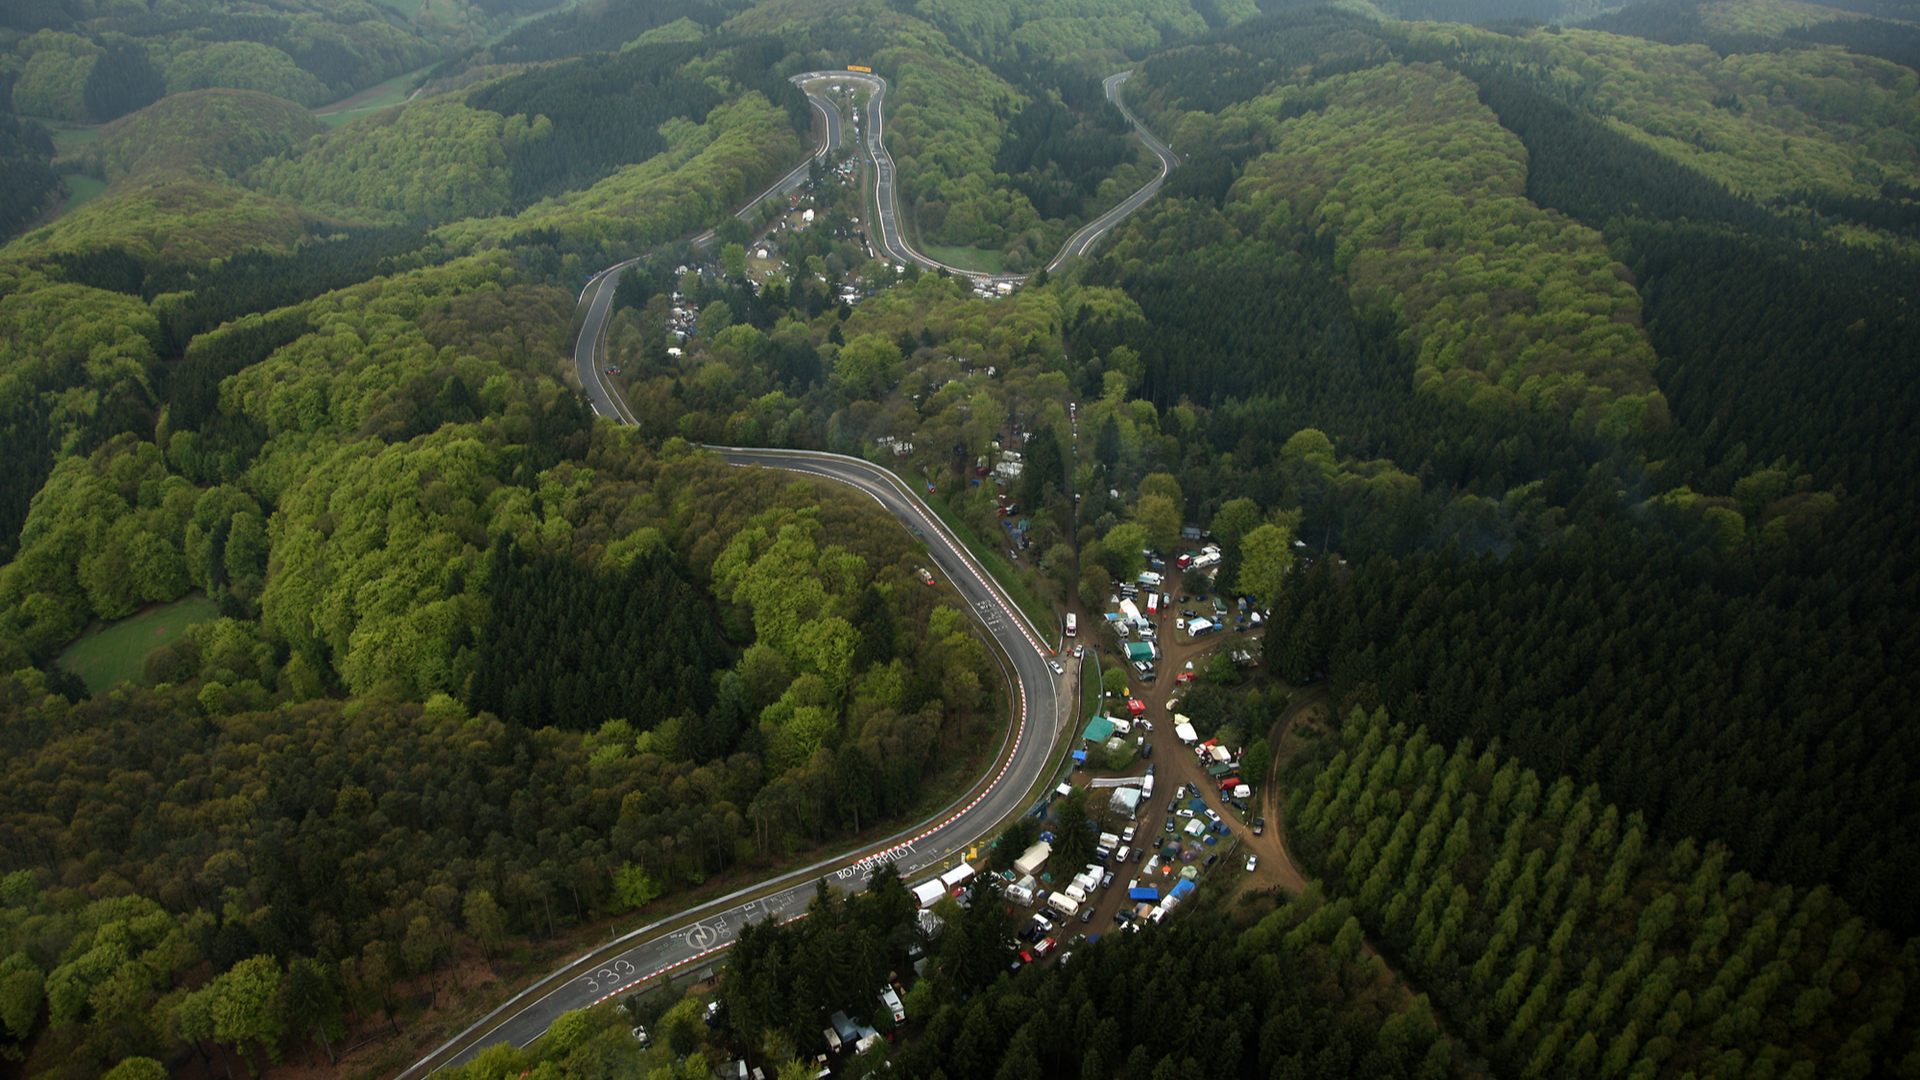 Nordschleife From Above